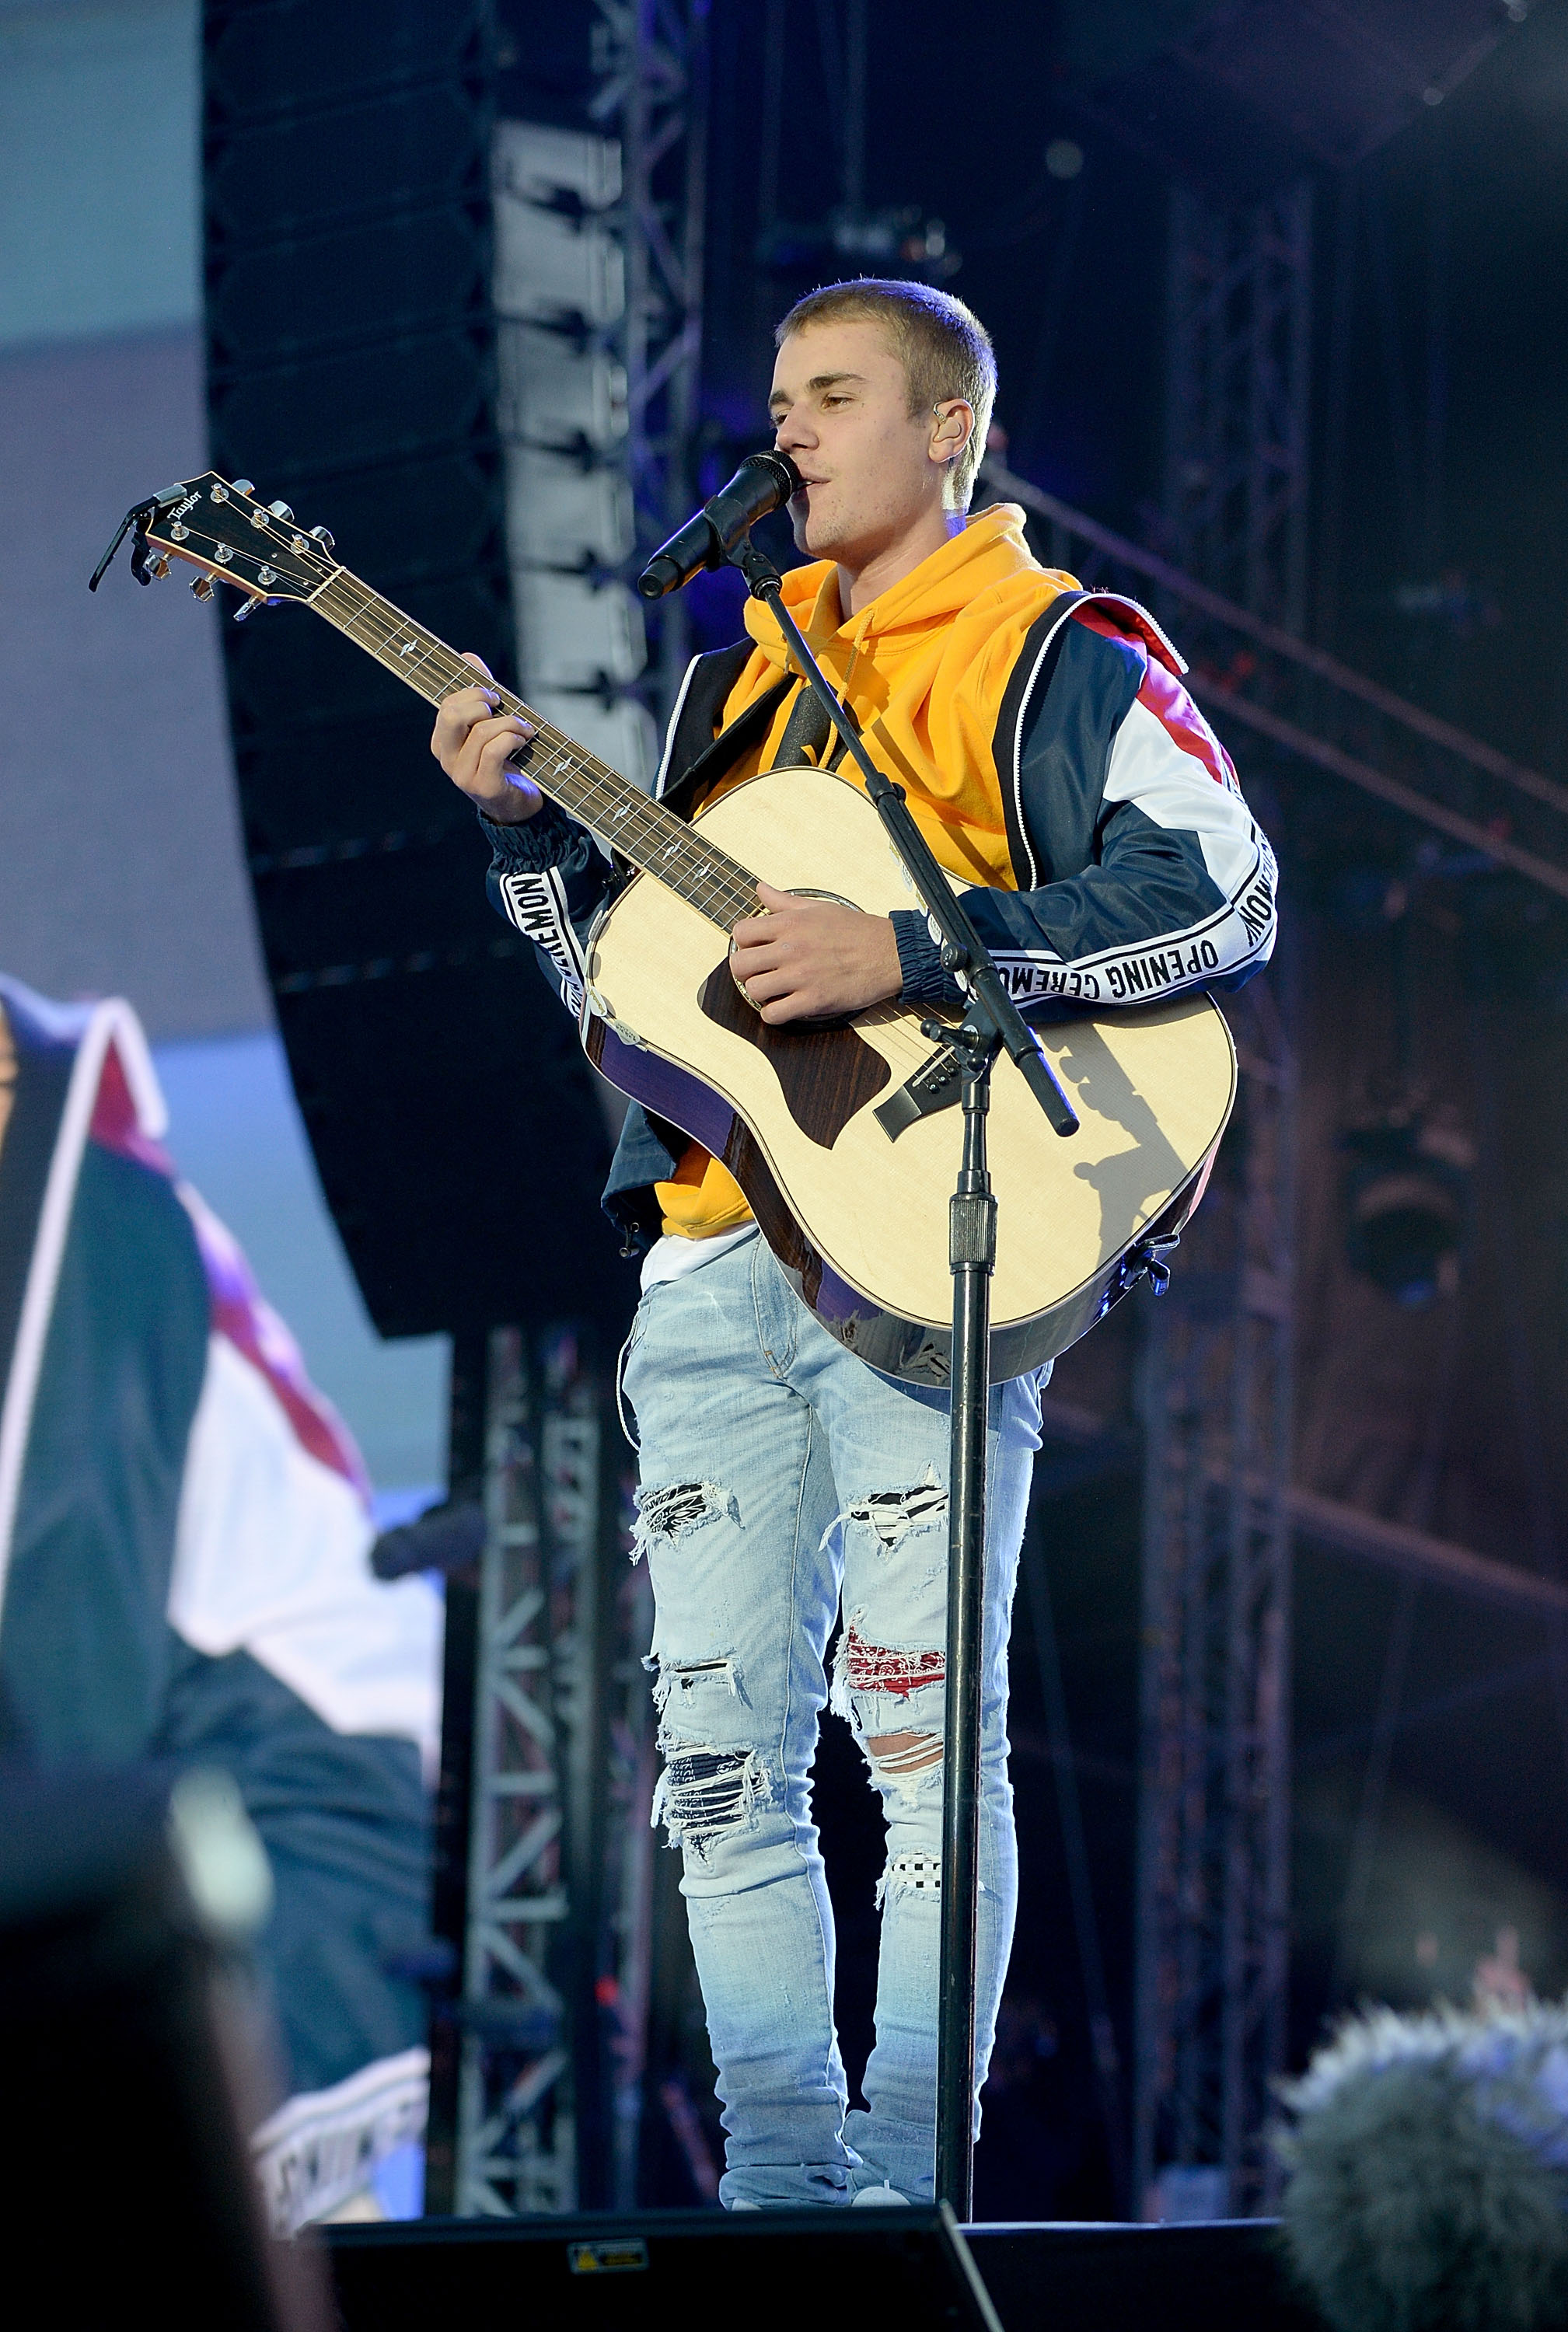 Justin-Bieber-performs-on-stage-during-the-One-Love-Manchester-benefit-concert-at-Old-Trafford-on-June-4-2017-in-Manchester-England